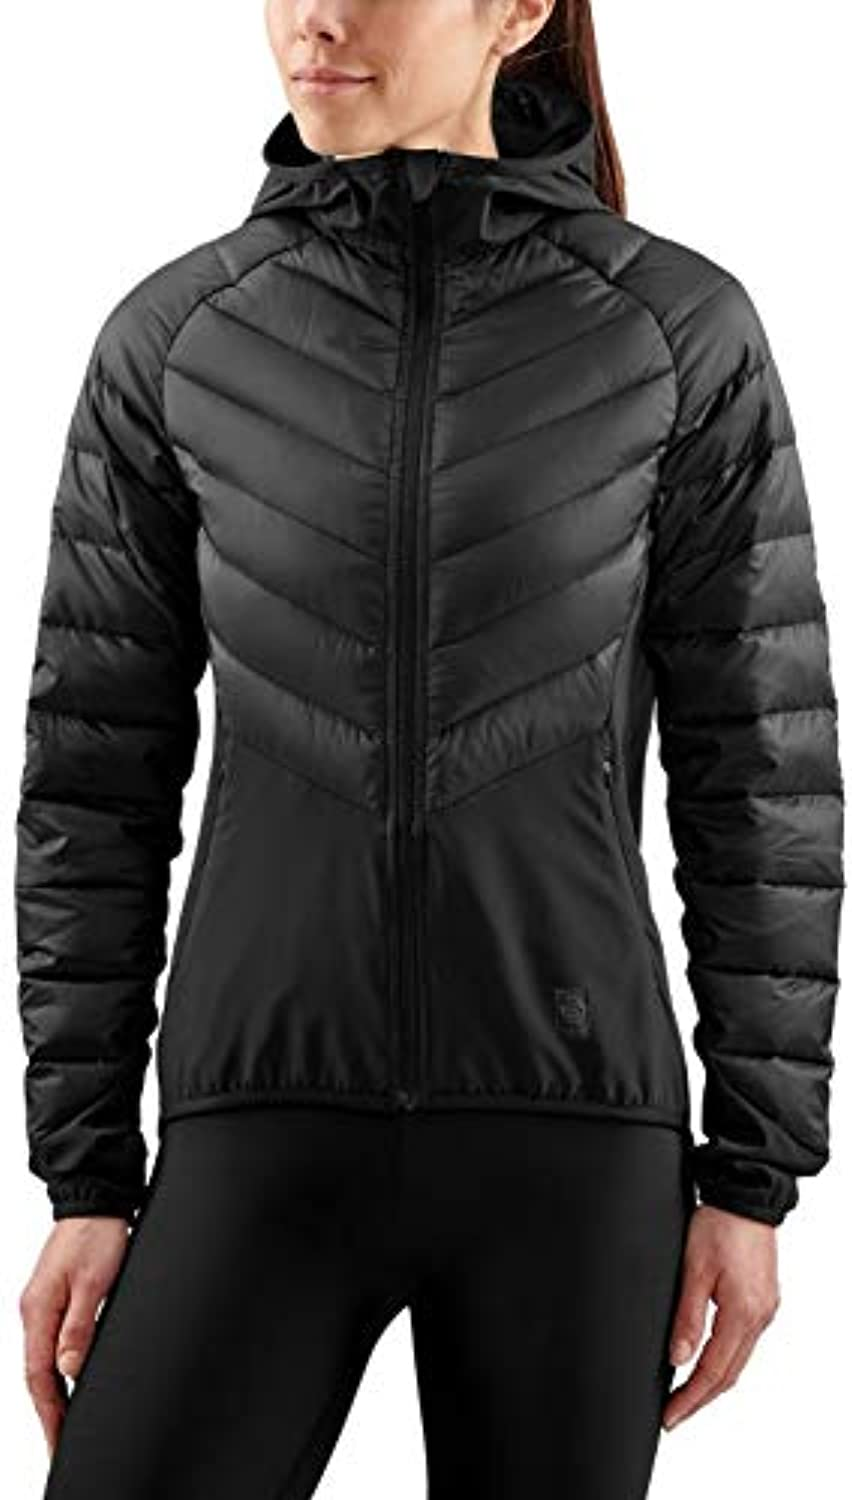 Skins Activewear Women's Ultra Mapped Light Down Jacket